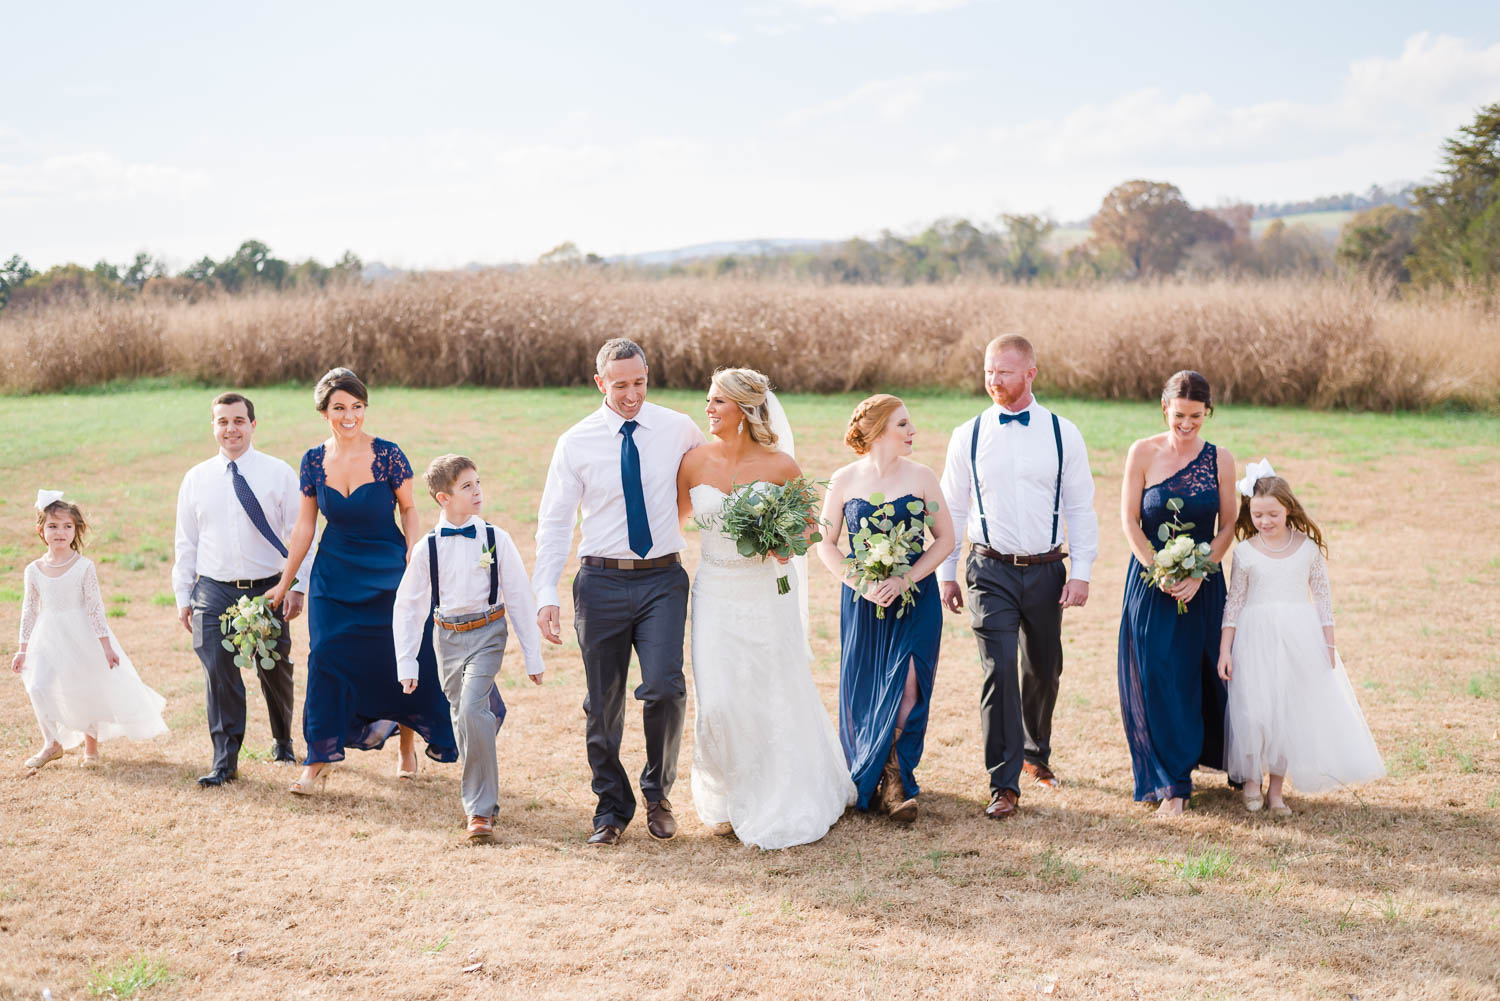 november wedding colors in navy dresses and guys in white shirts